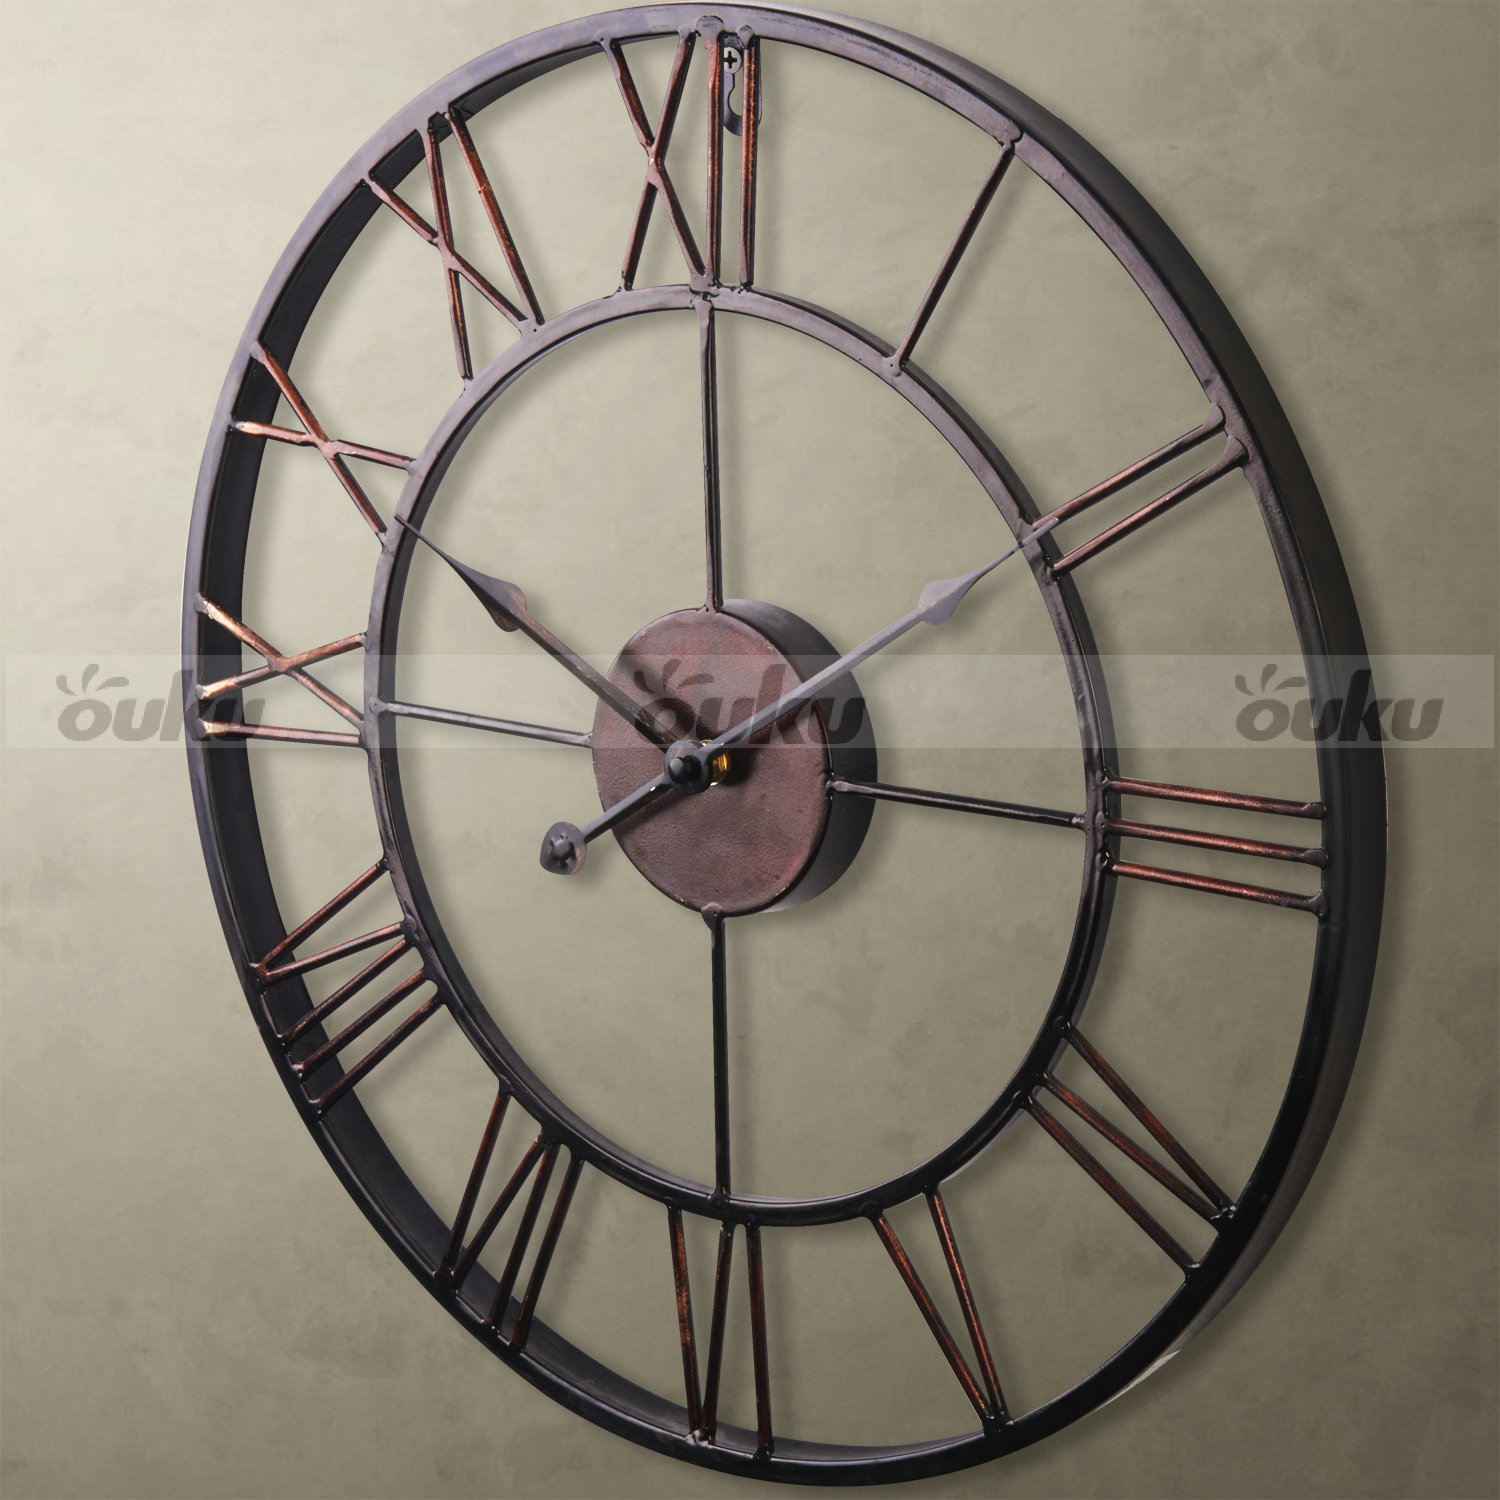 Large analog metal wrought iron wall clock provincial roman numerals bronze us ebay - Large roman numeral wall clocks ...